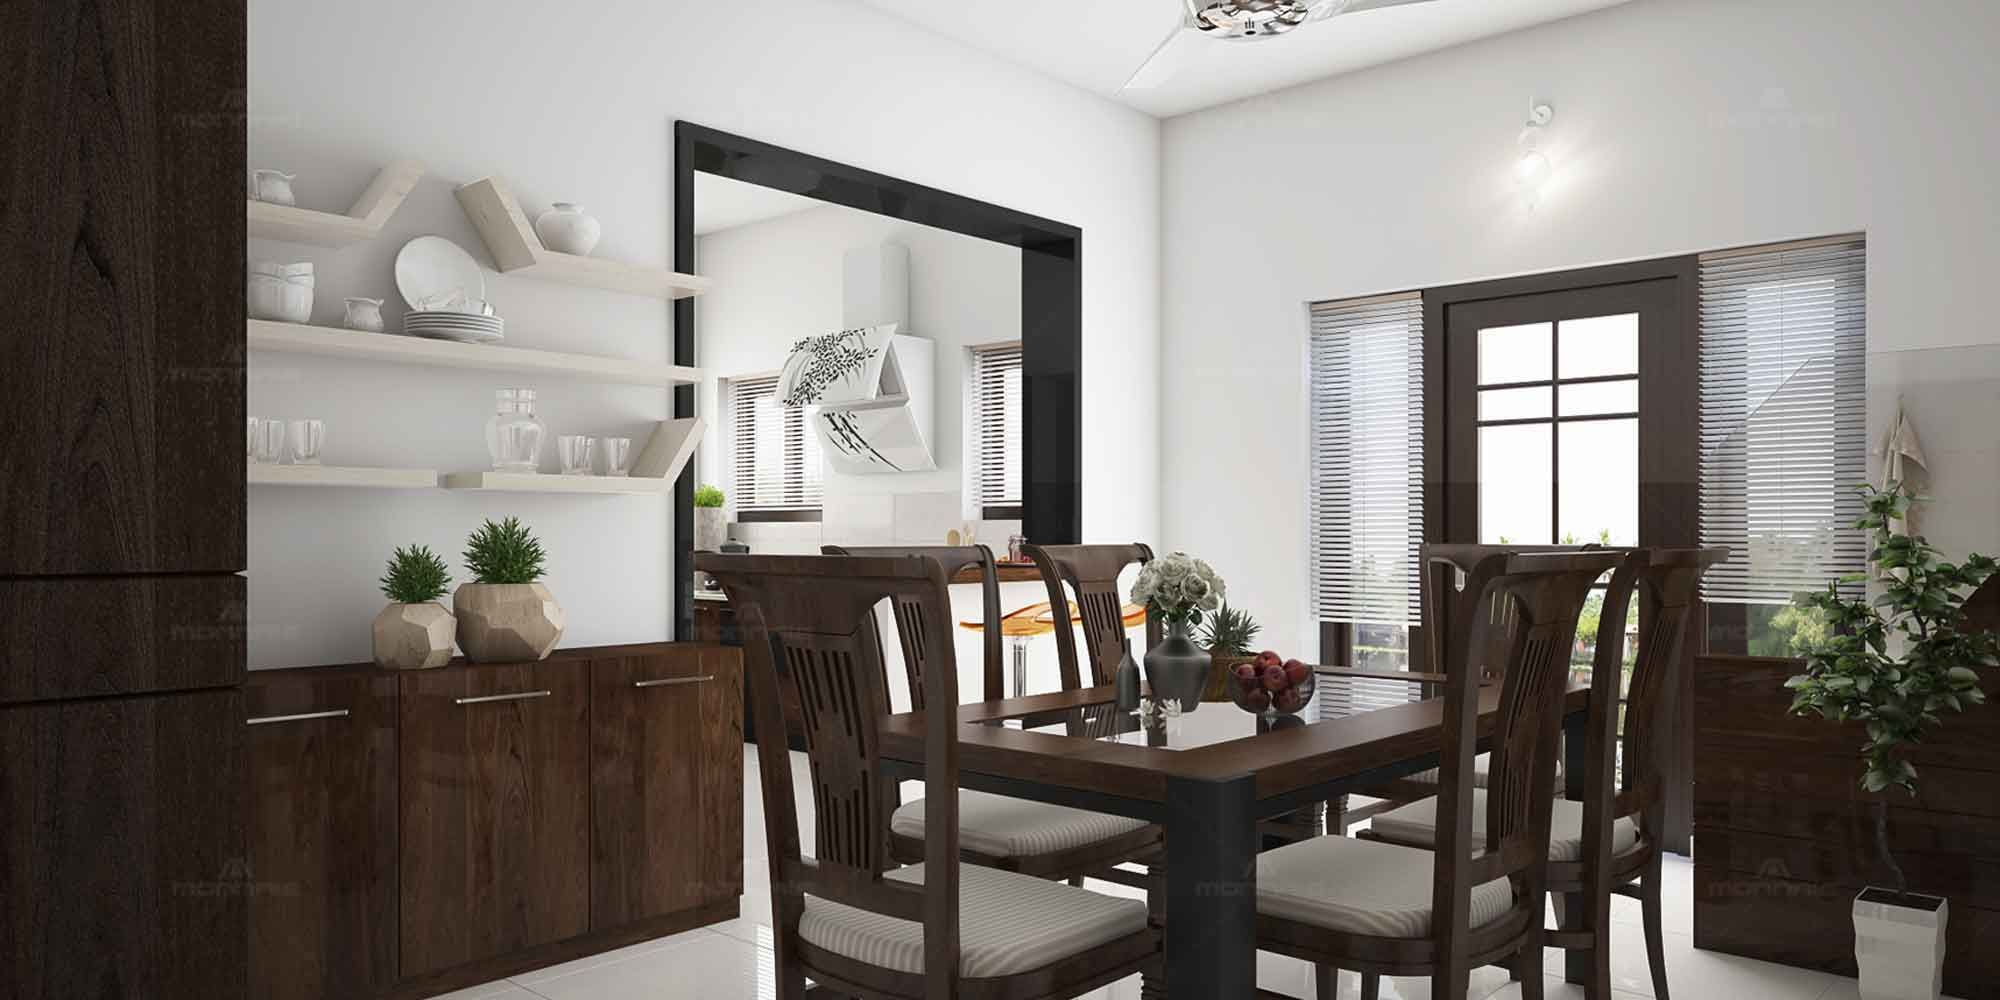 Pin By Simply Decorate On Interior Design Ideas Dining Room